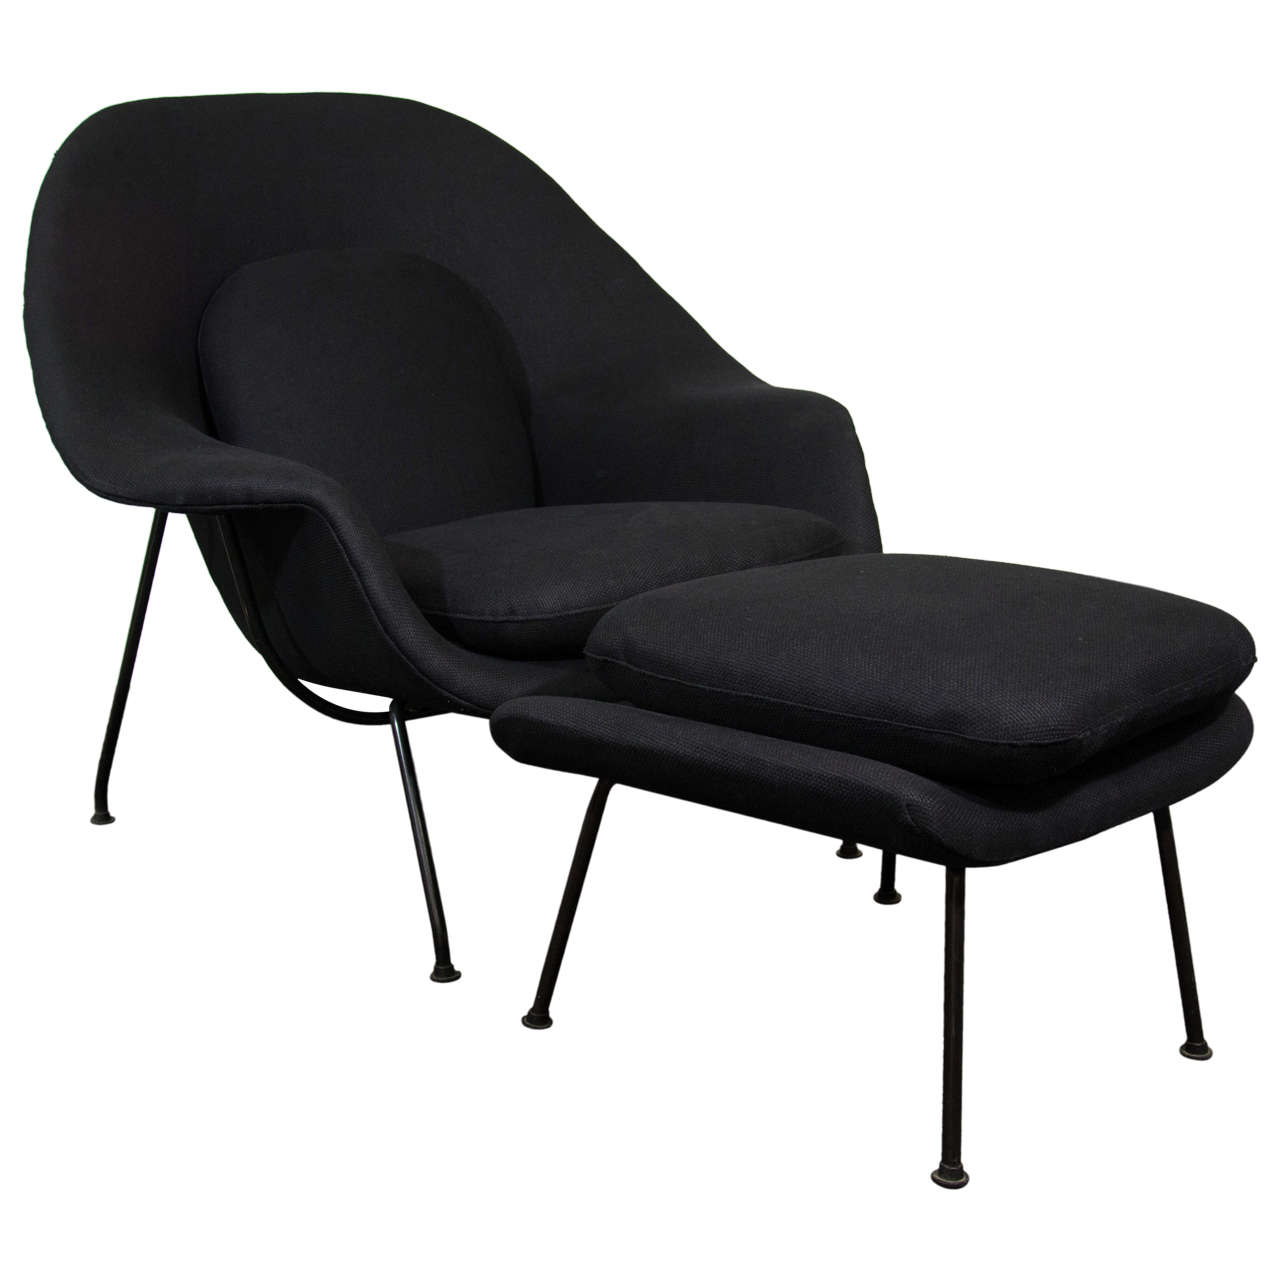 midcentury womb chair and ottoman by eero saarinen for knoll at